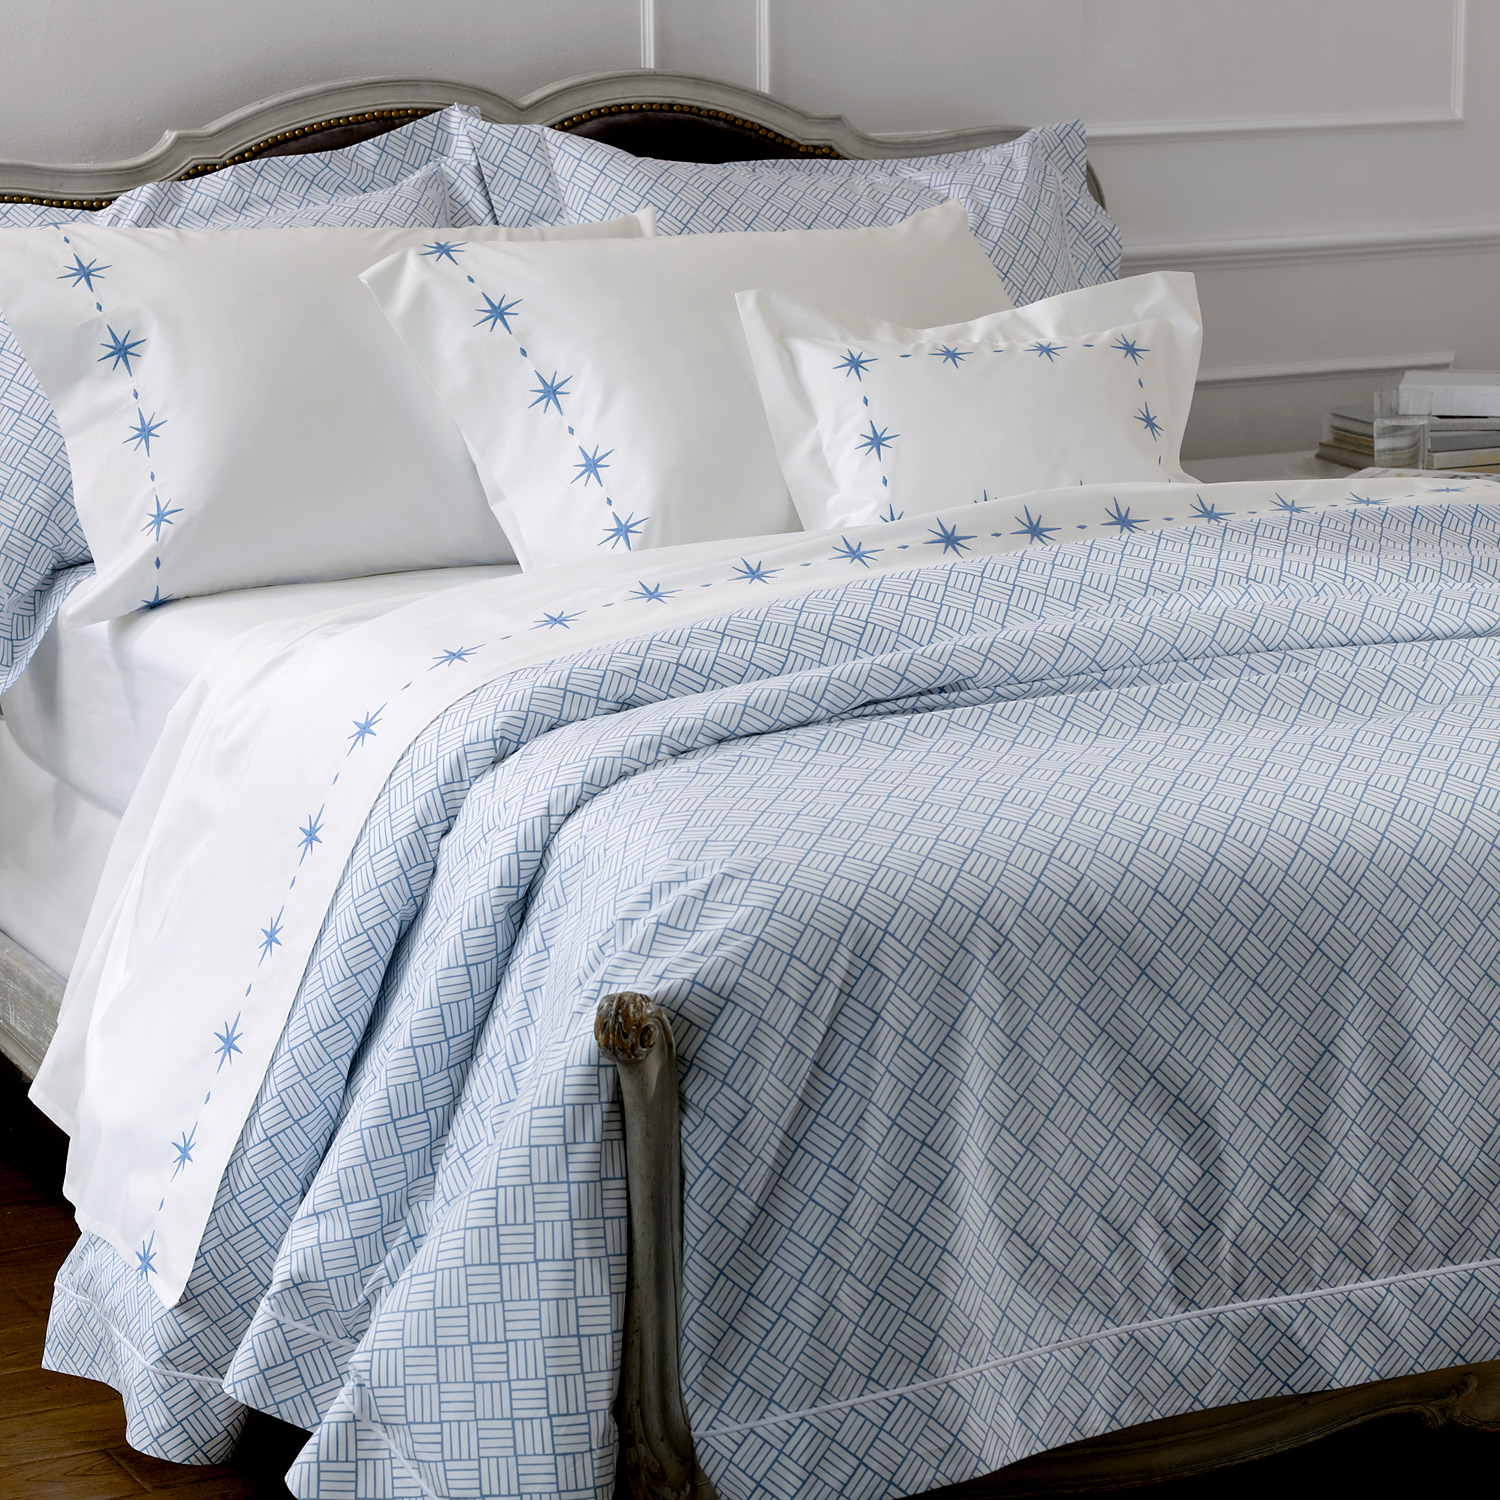 Elegant matouk sheets with pillows for bedroom with matouk sheets sale